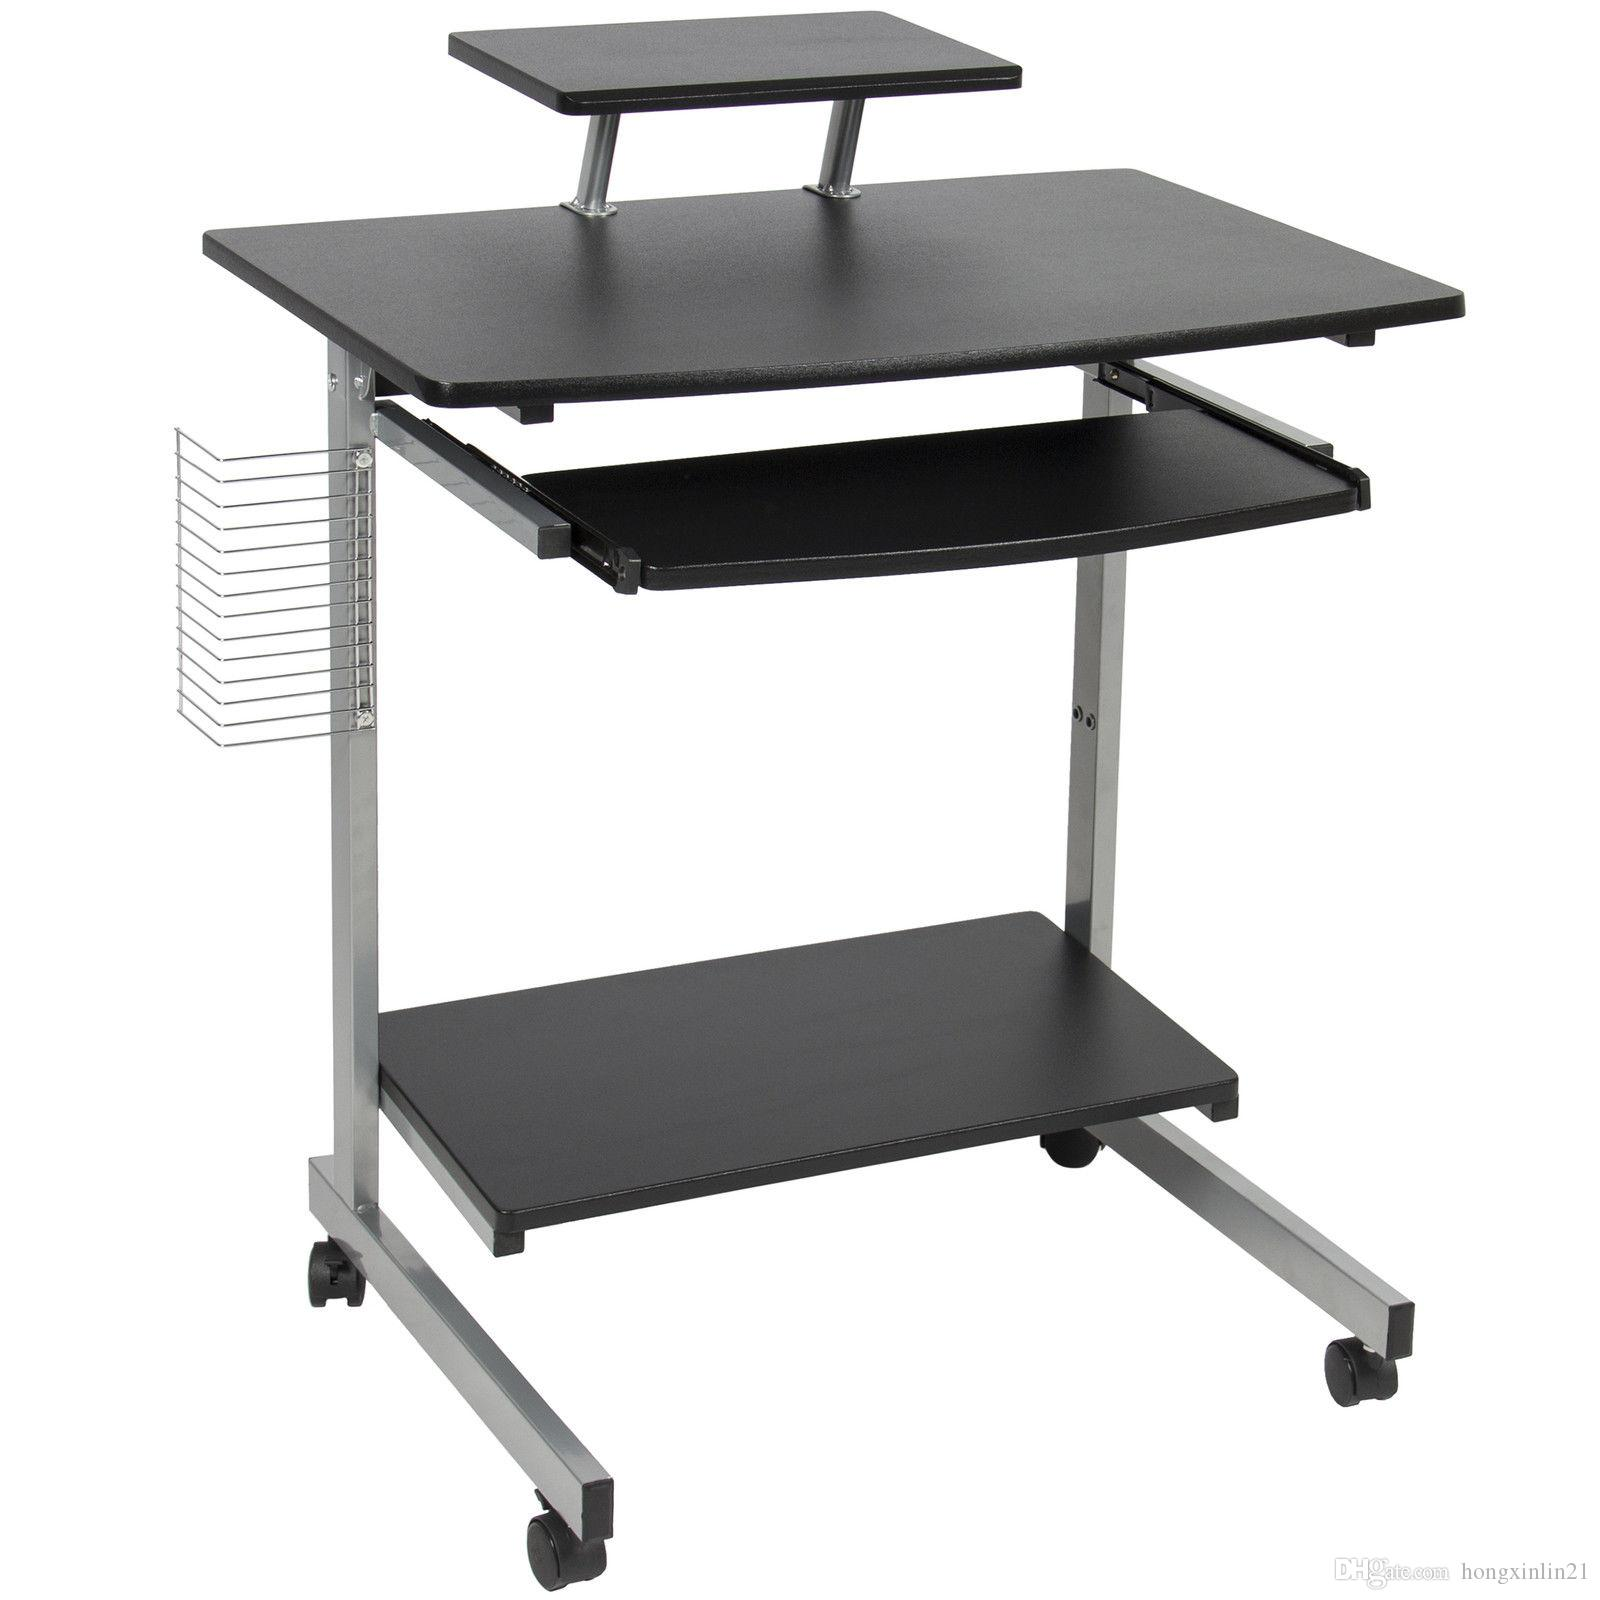 cart height this wheeled pieces pin ergonomic adjustable portable laptop awesome with also brown standing computer as hardwood varnished counter top desk well two